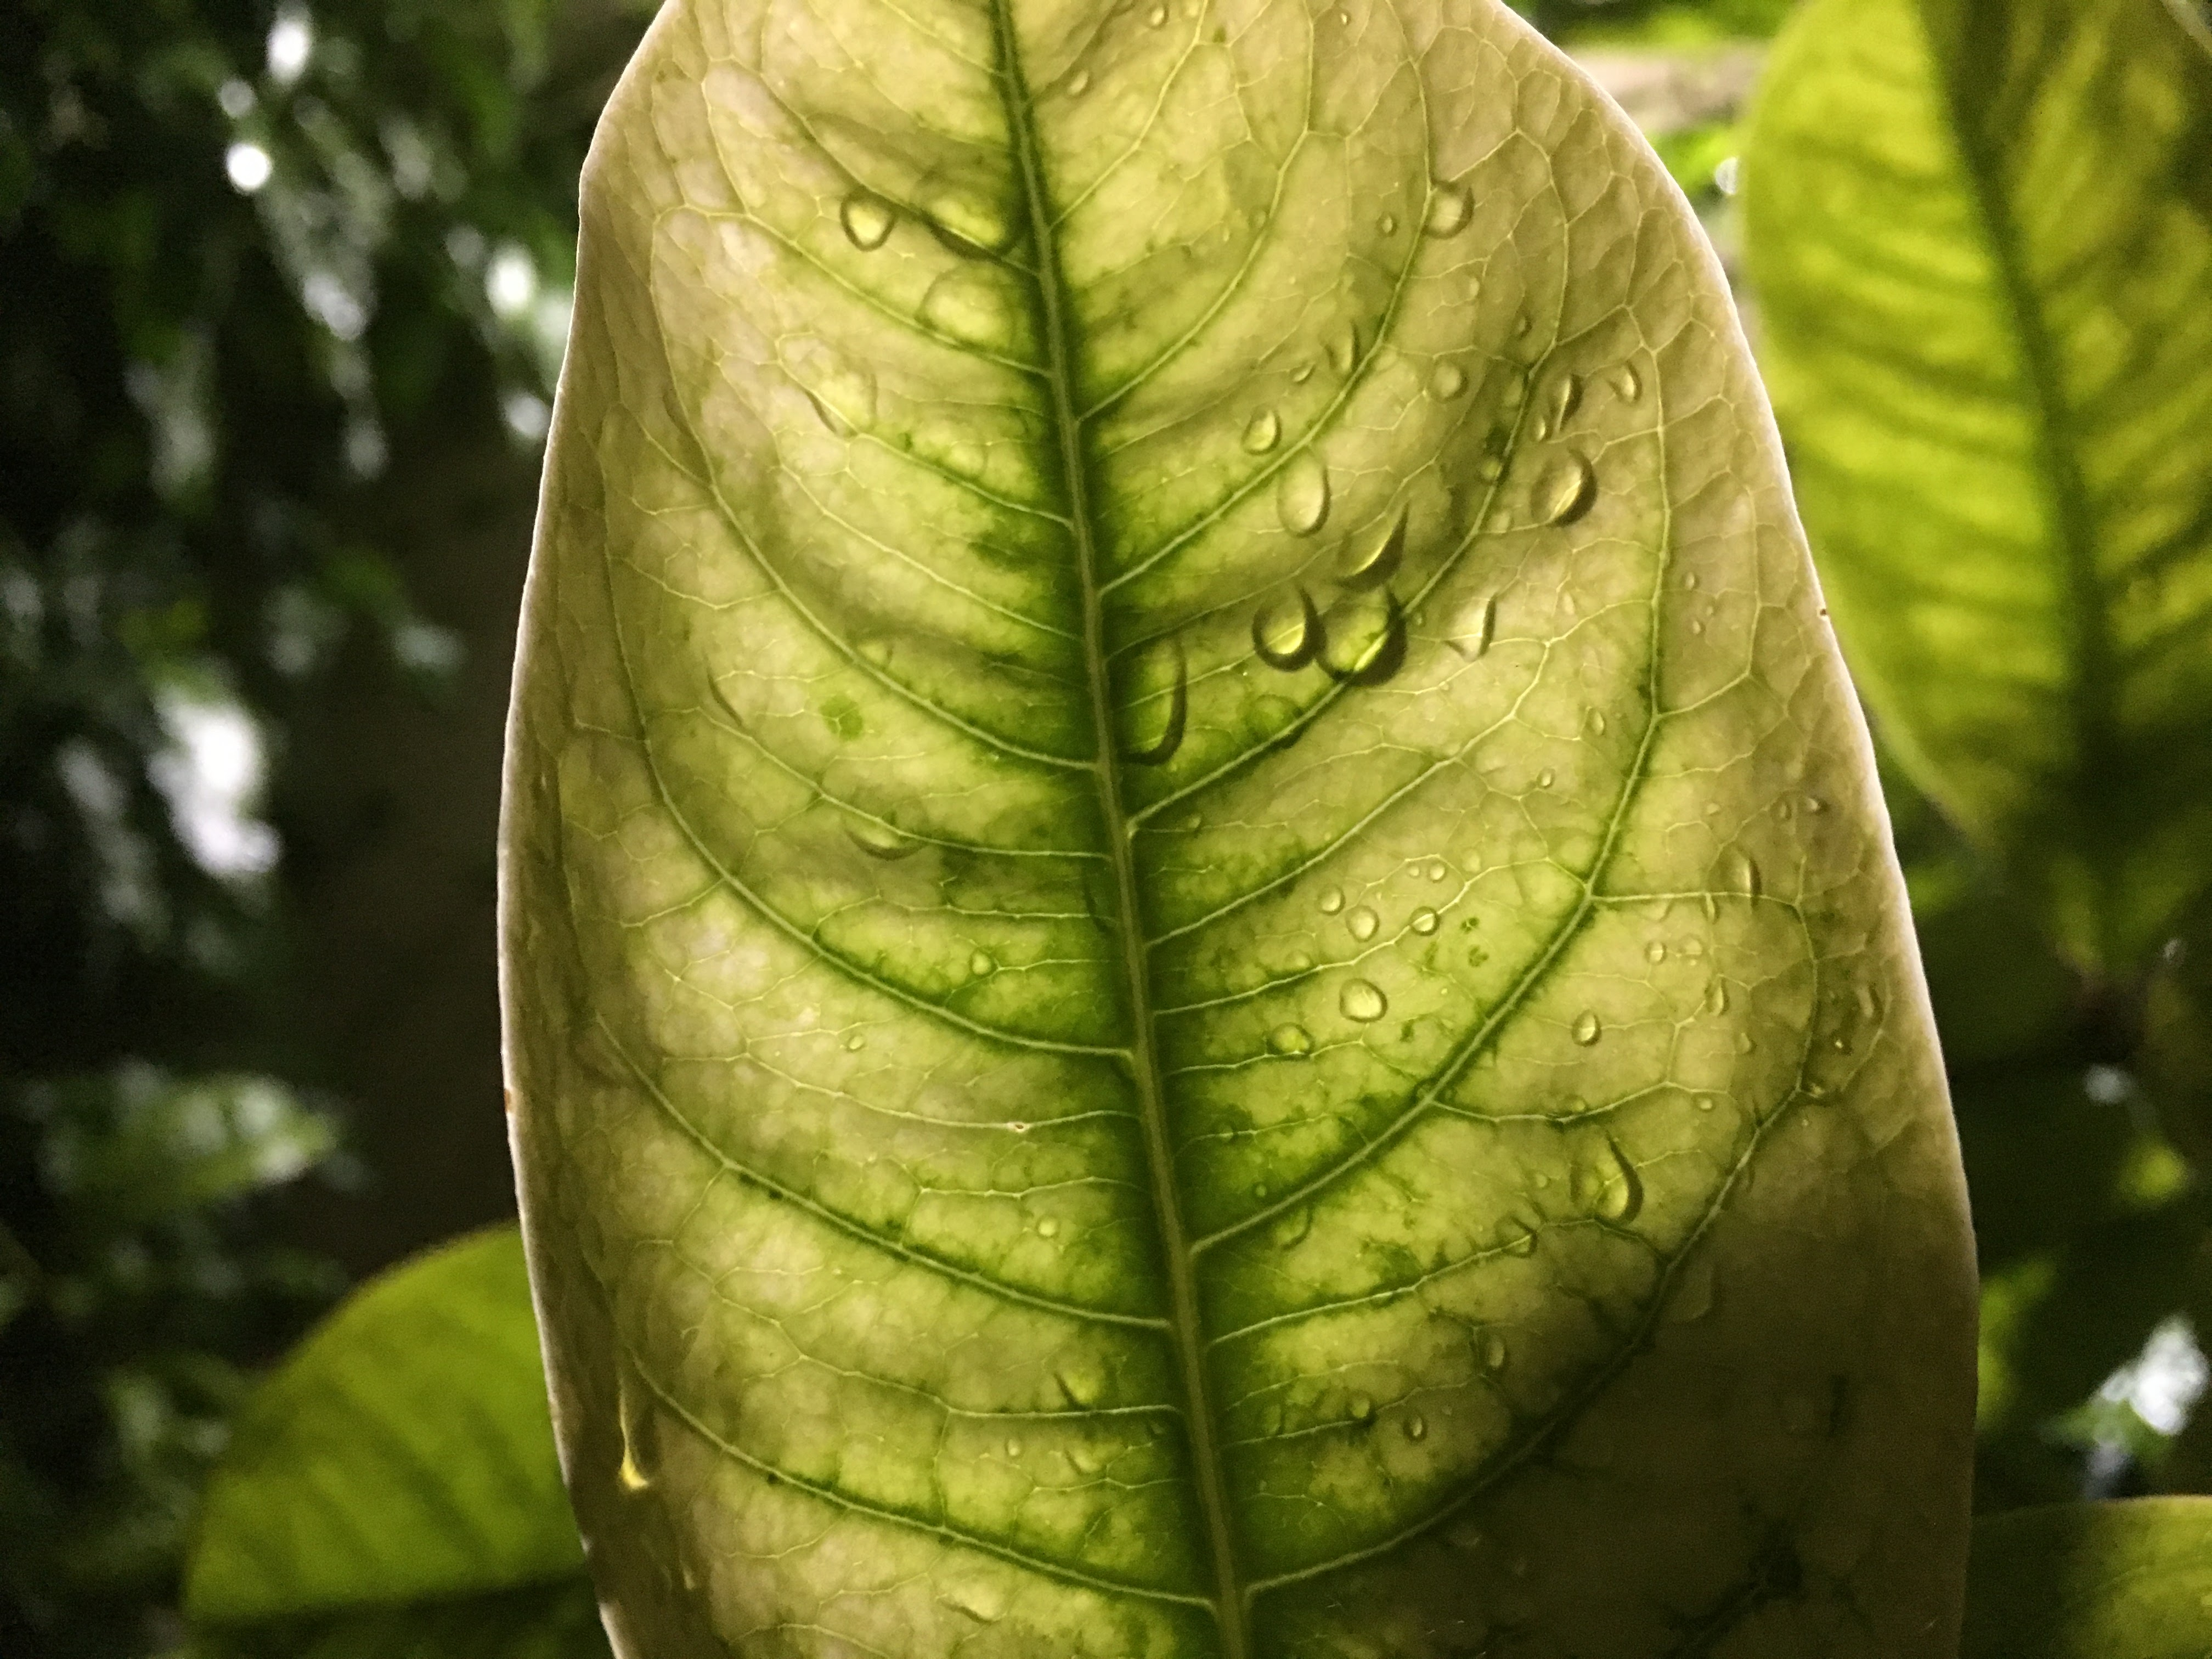 See Through Veins Of A Leaf With Water Droplets